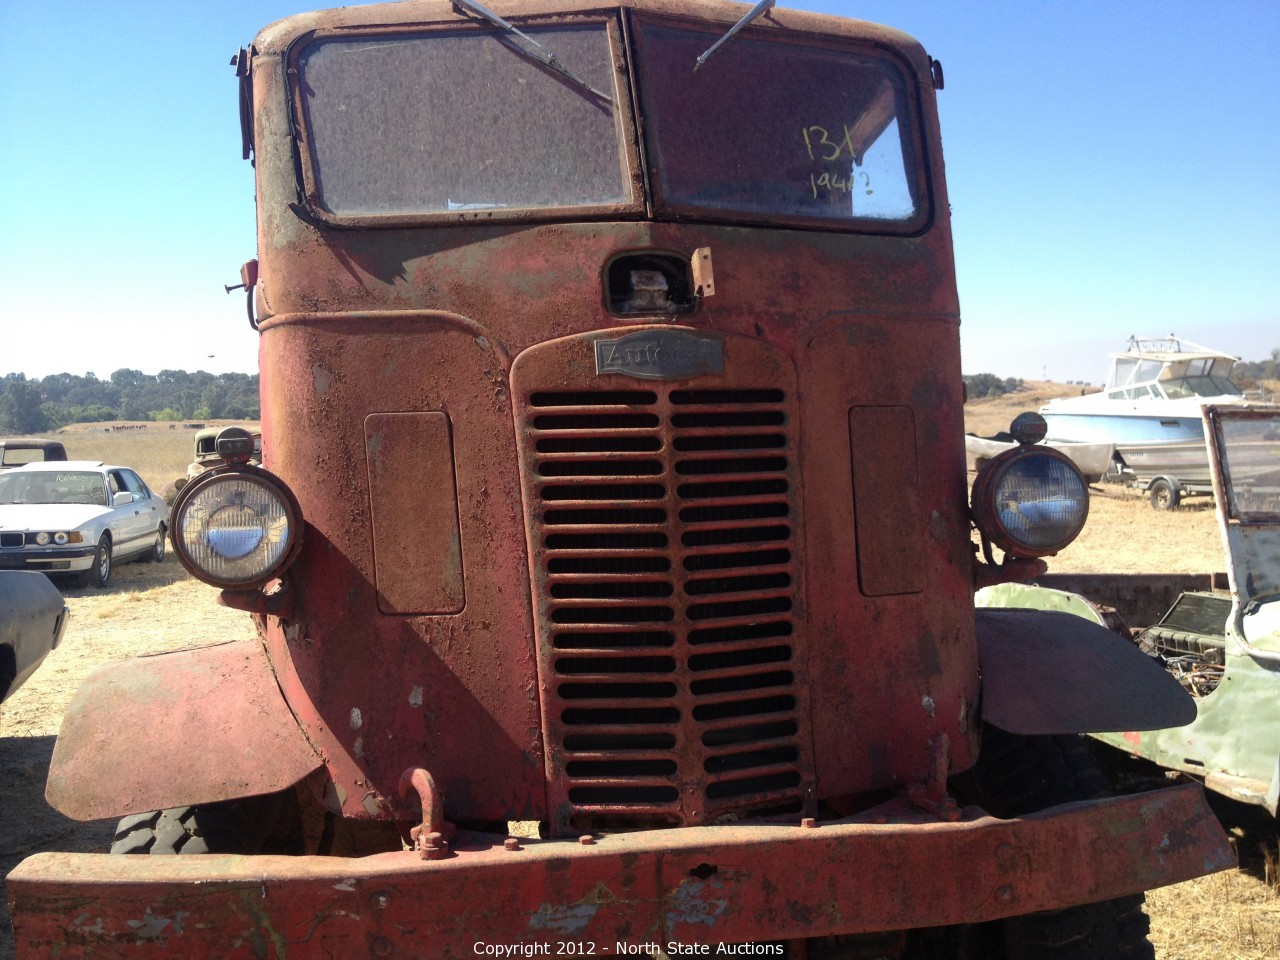 North State Auctions - Auction: Antique Car, Barn Finds, South-forty ...